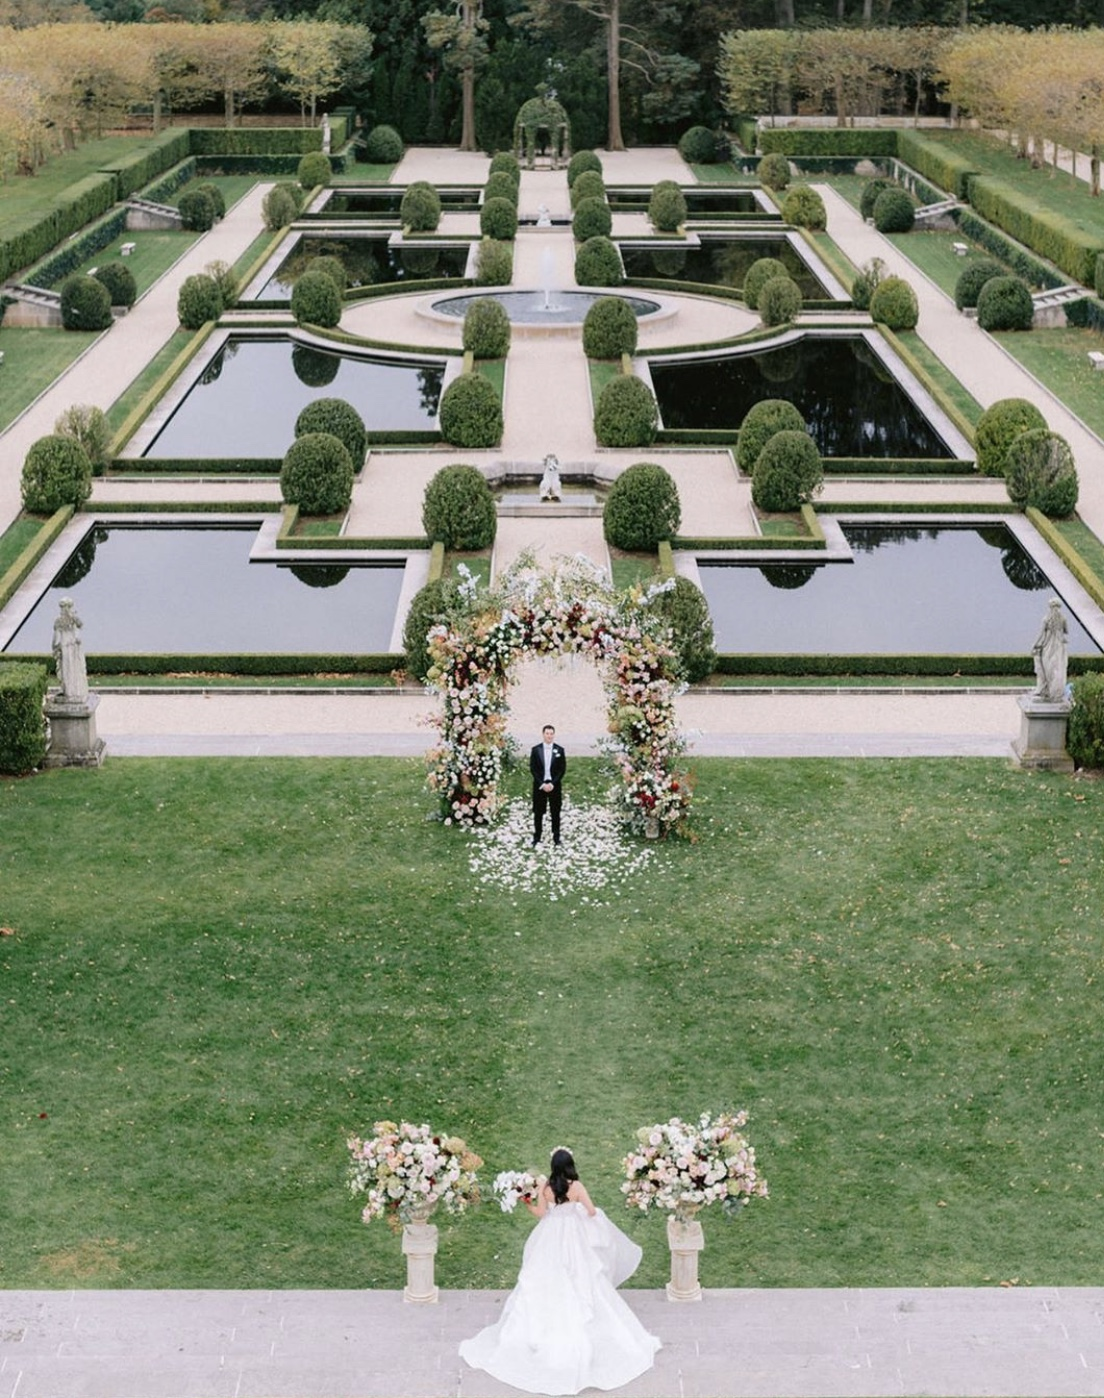 First-look-photography-outdoor-oheka-castle-new-york-greg-finck-photography-at manicured-gardens-groom-waiting-for bride-under-floral-wedding-archway